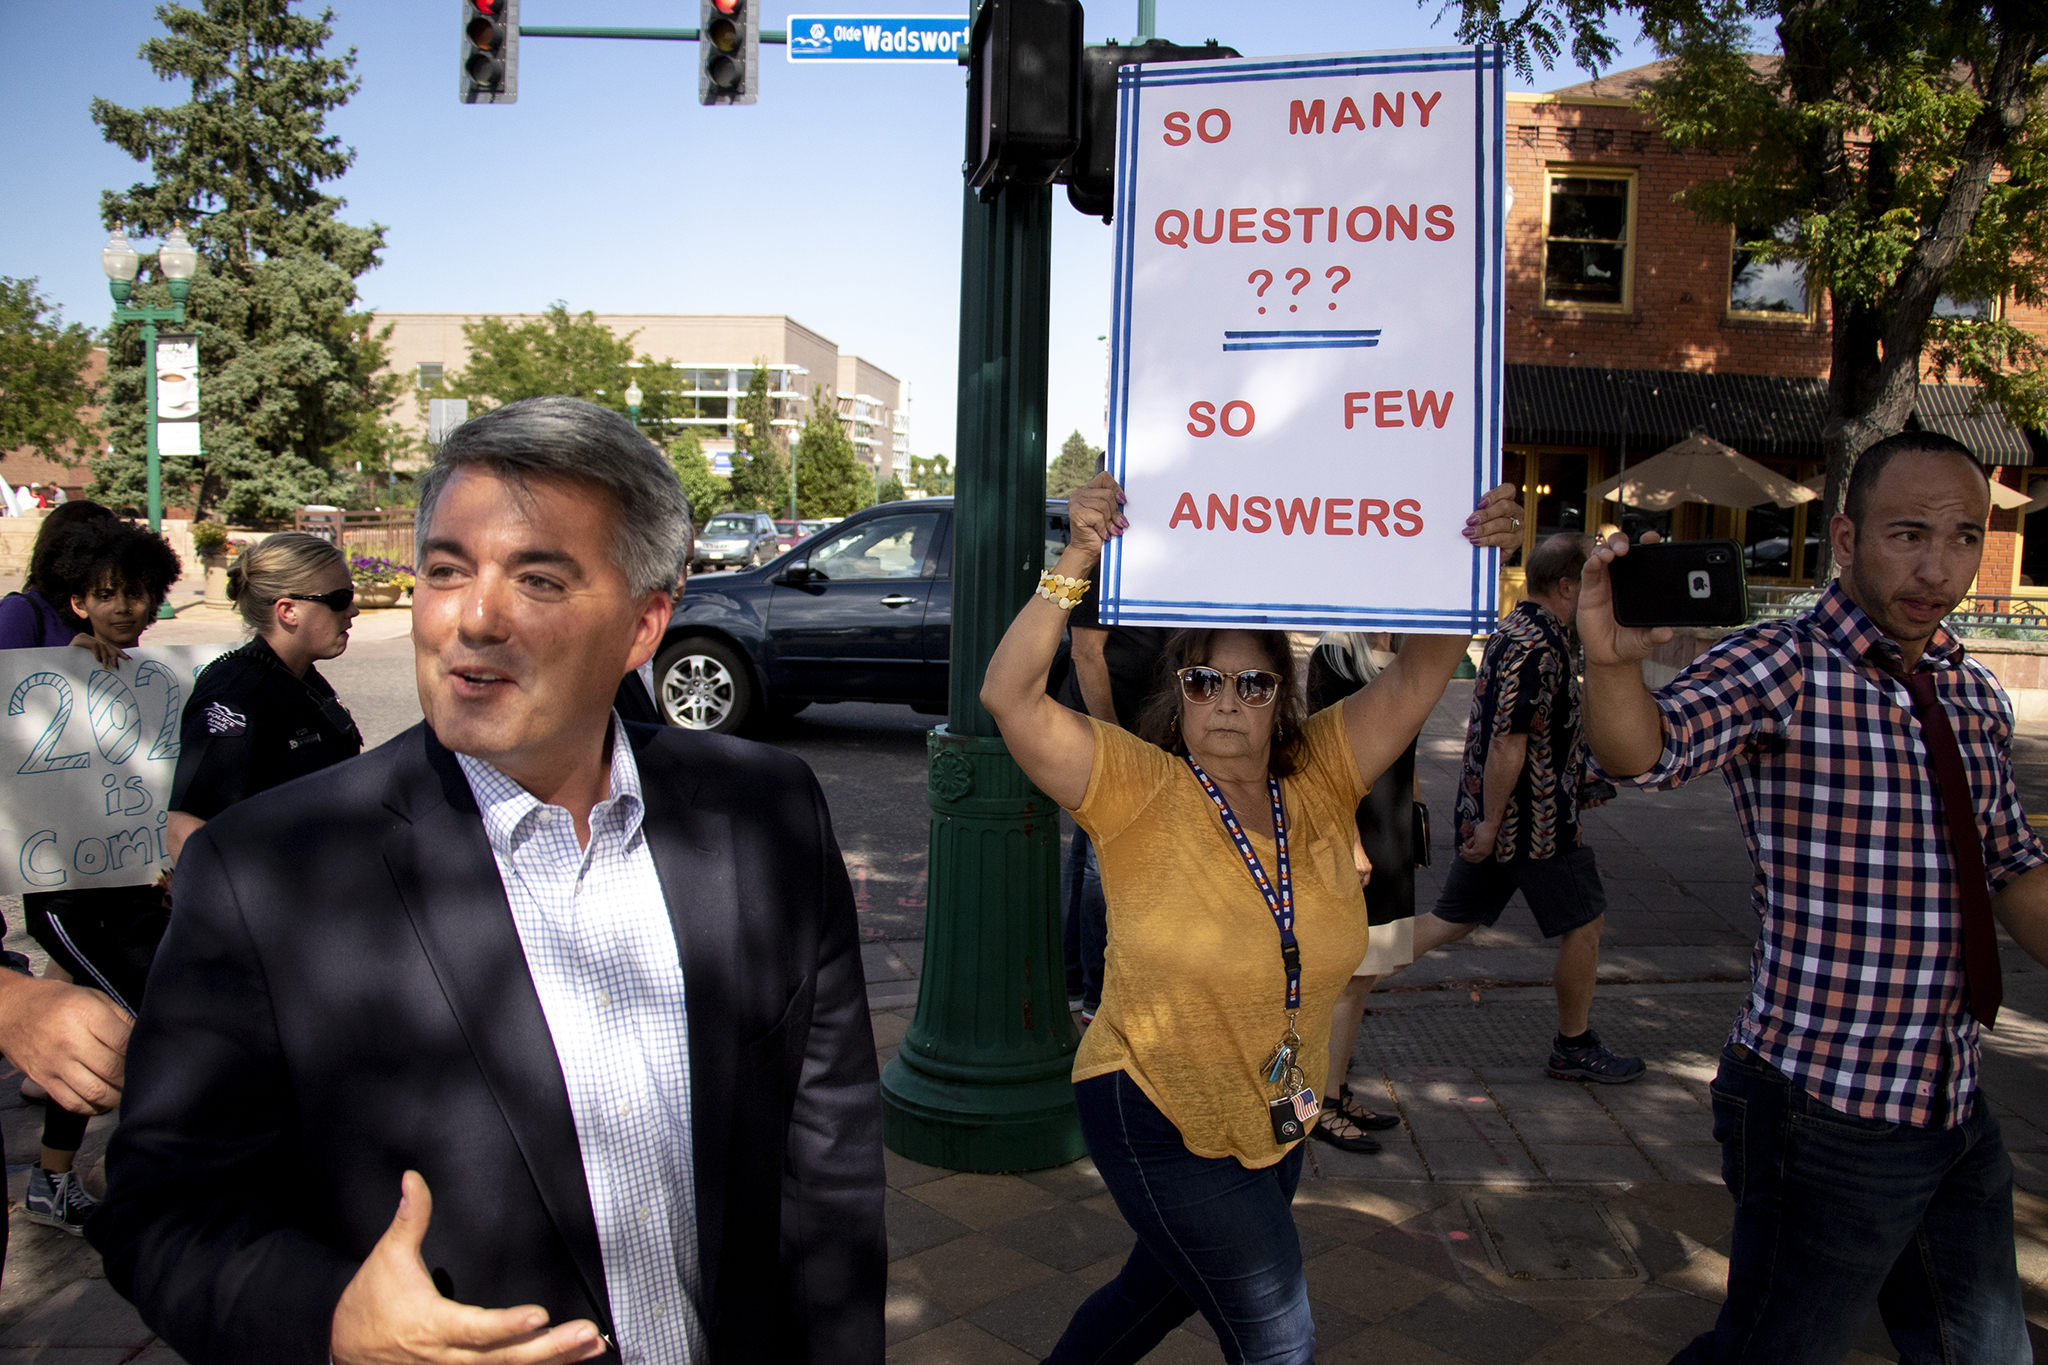 Susan Glass, chair of the Jefferson County Democratic party, holds a protest sign as Sen. Cory Gardner visits Arvada businesses, Aug. 13, 2019.